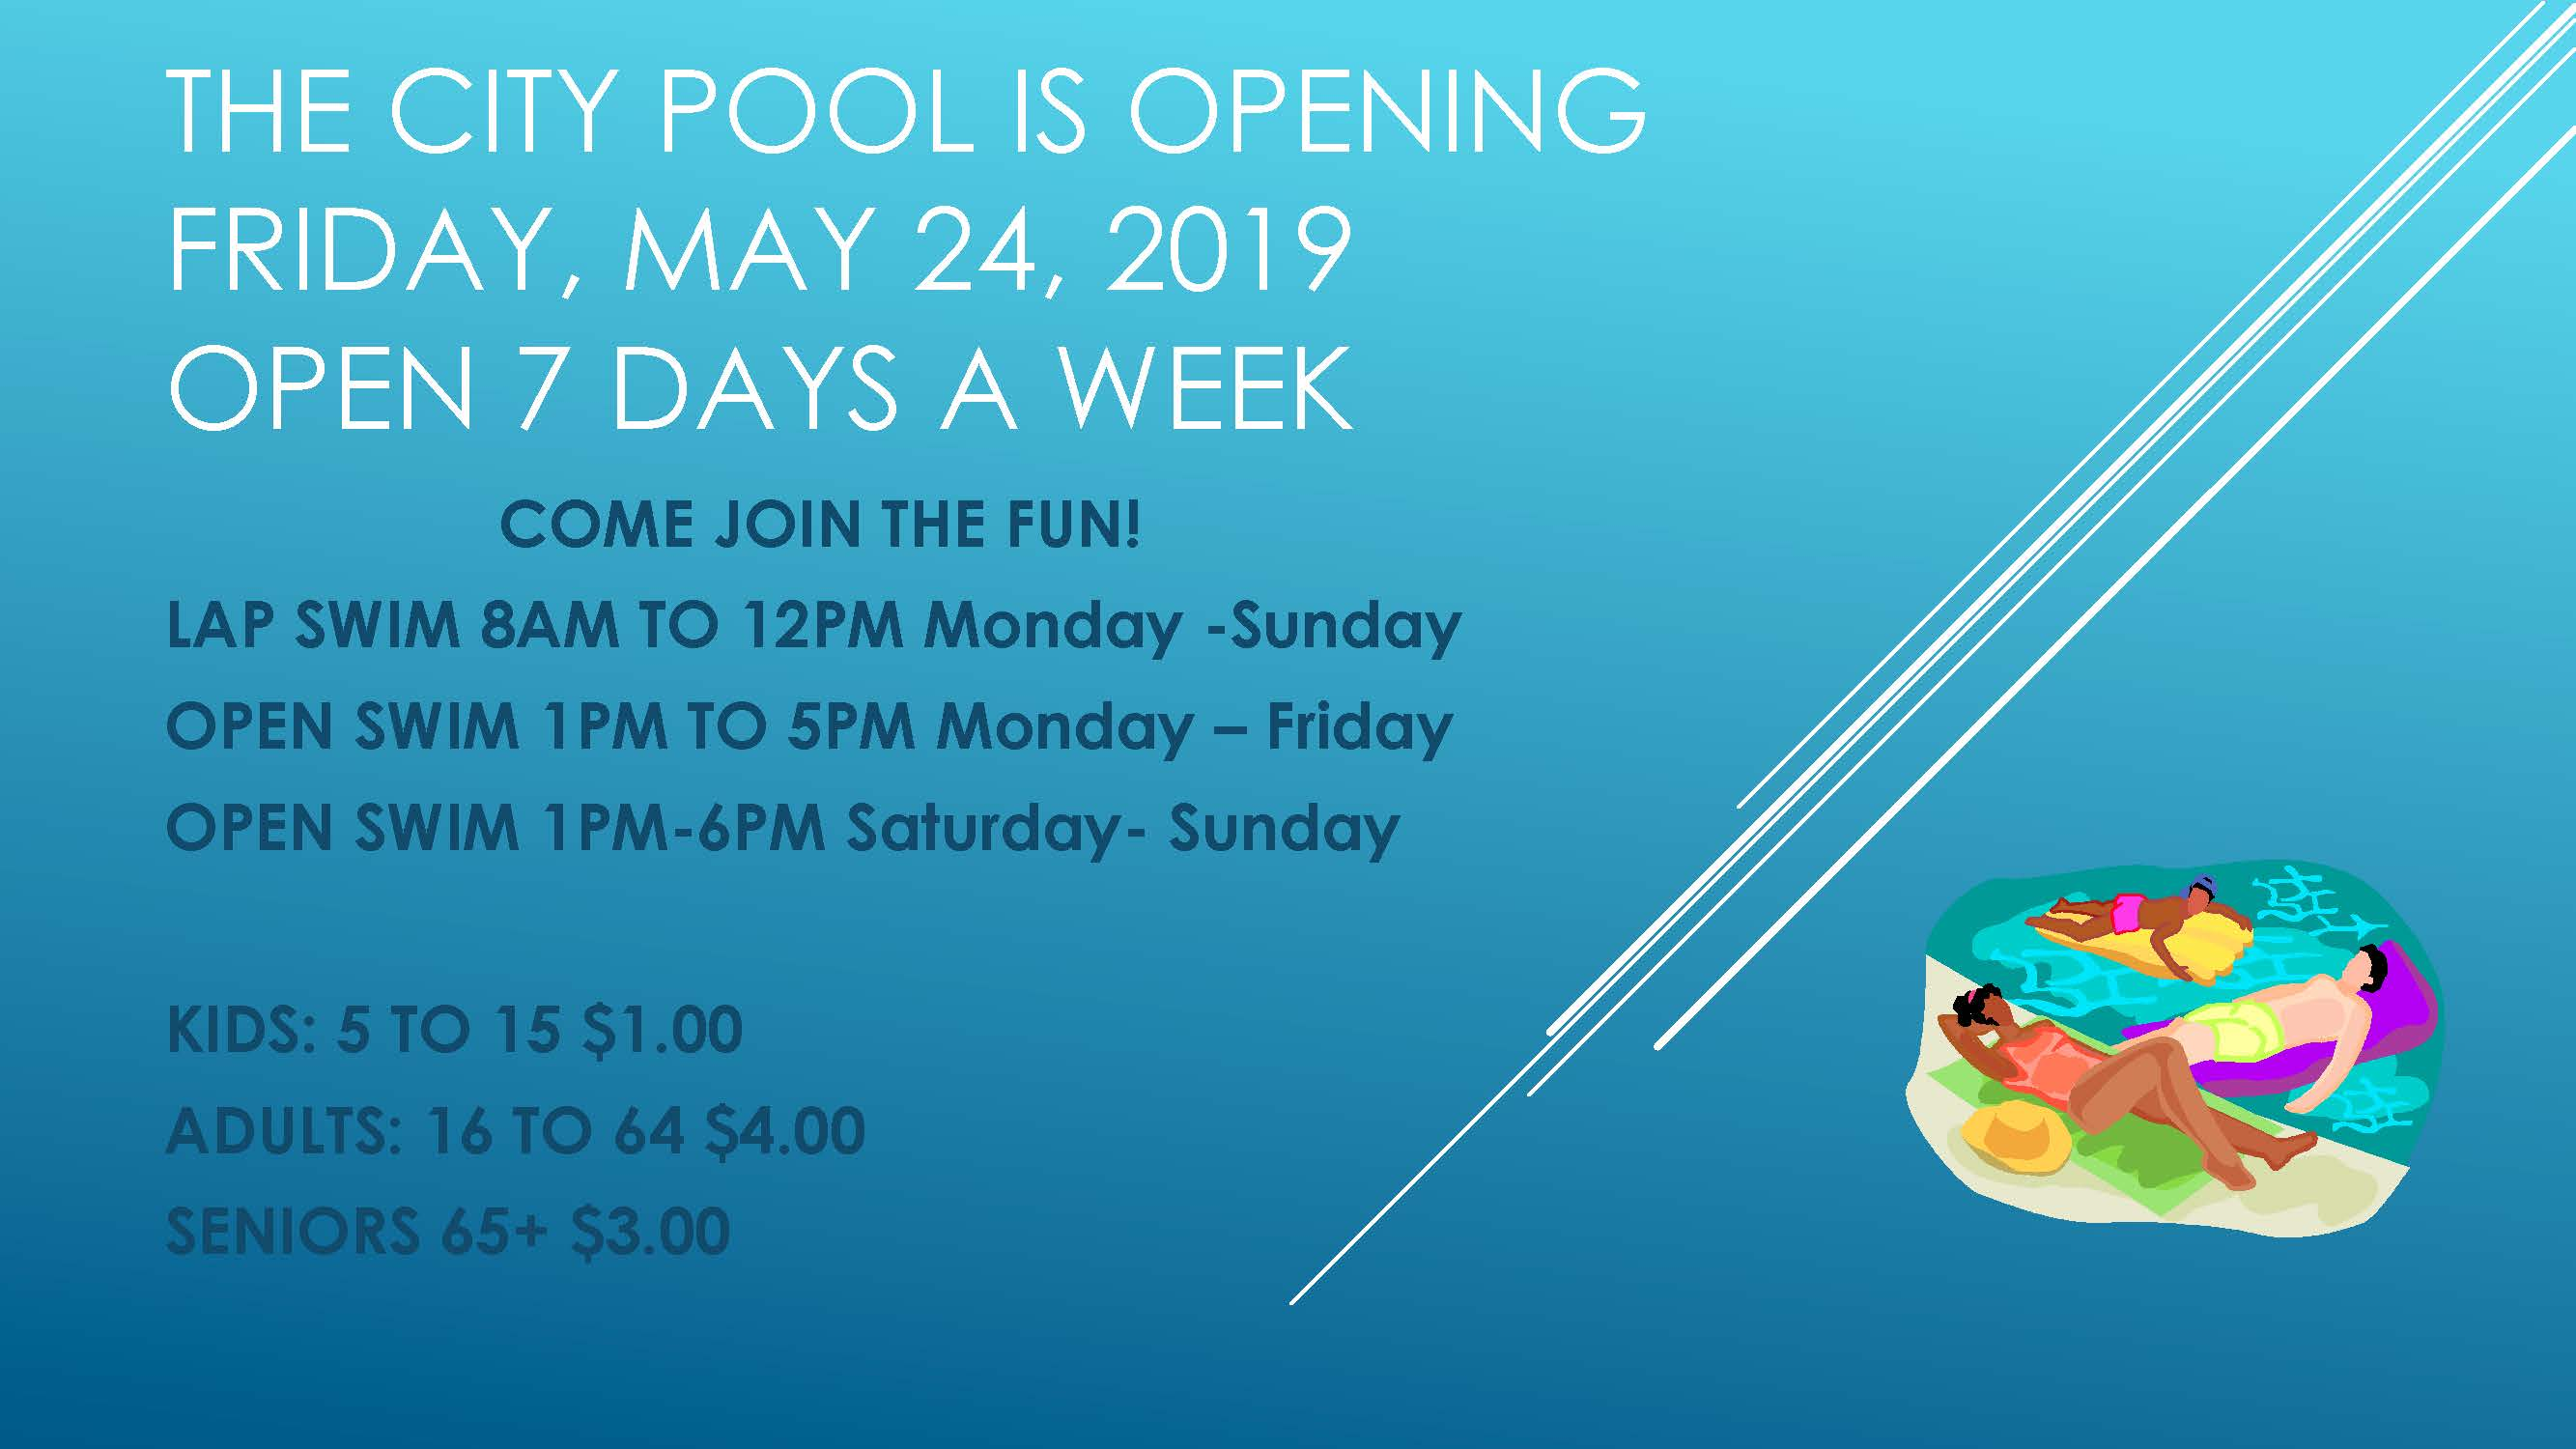 The City pool is opening